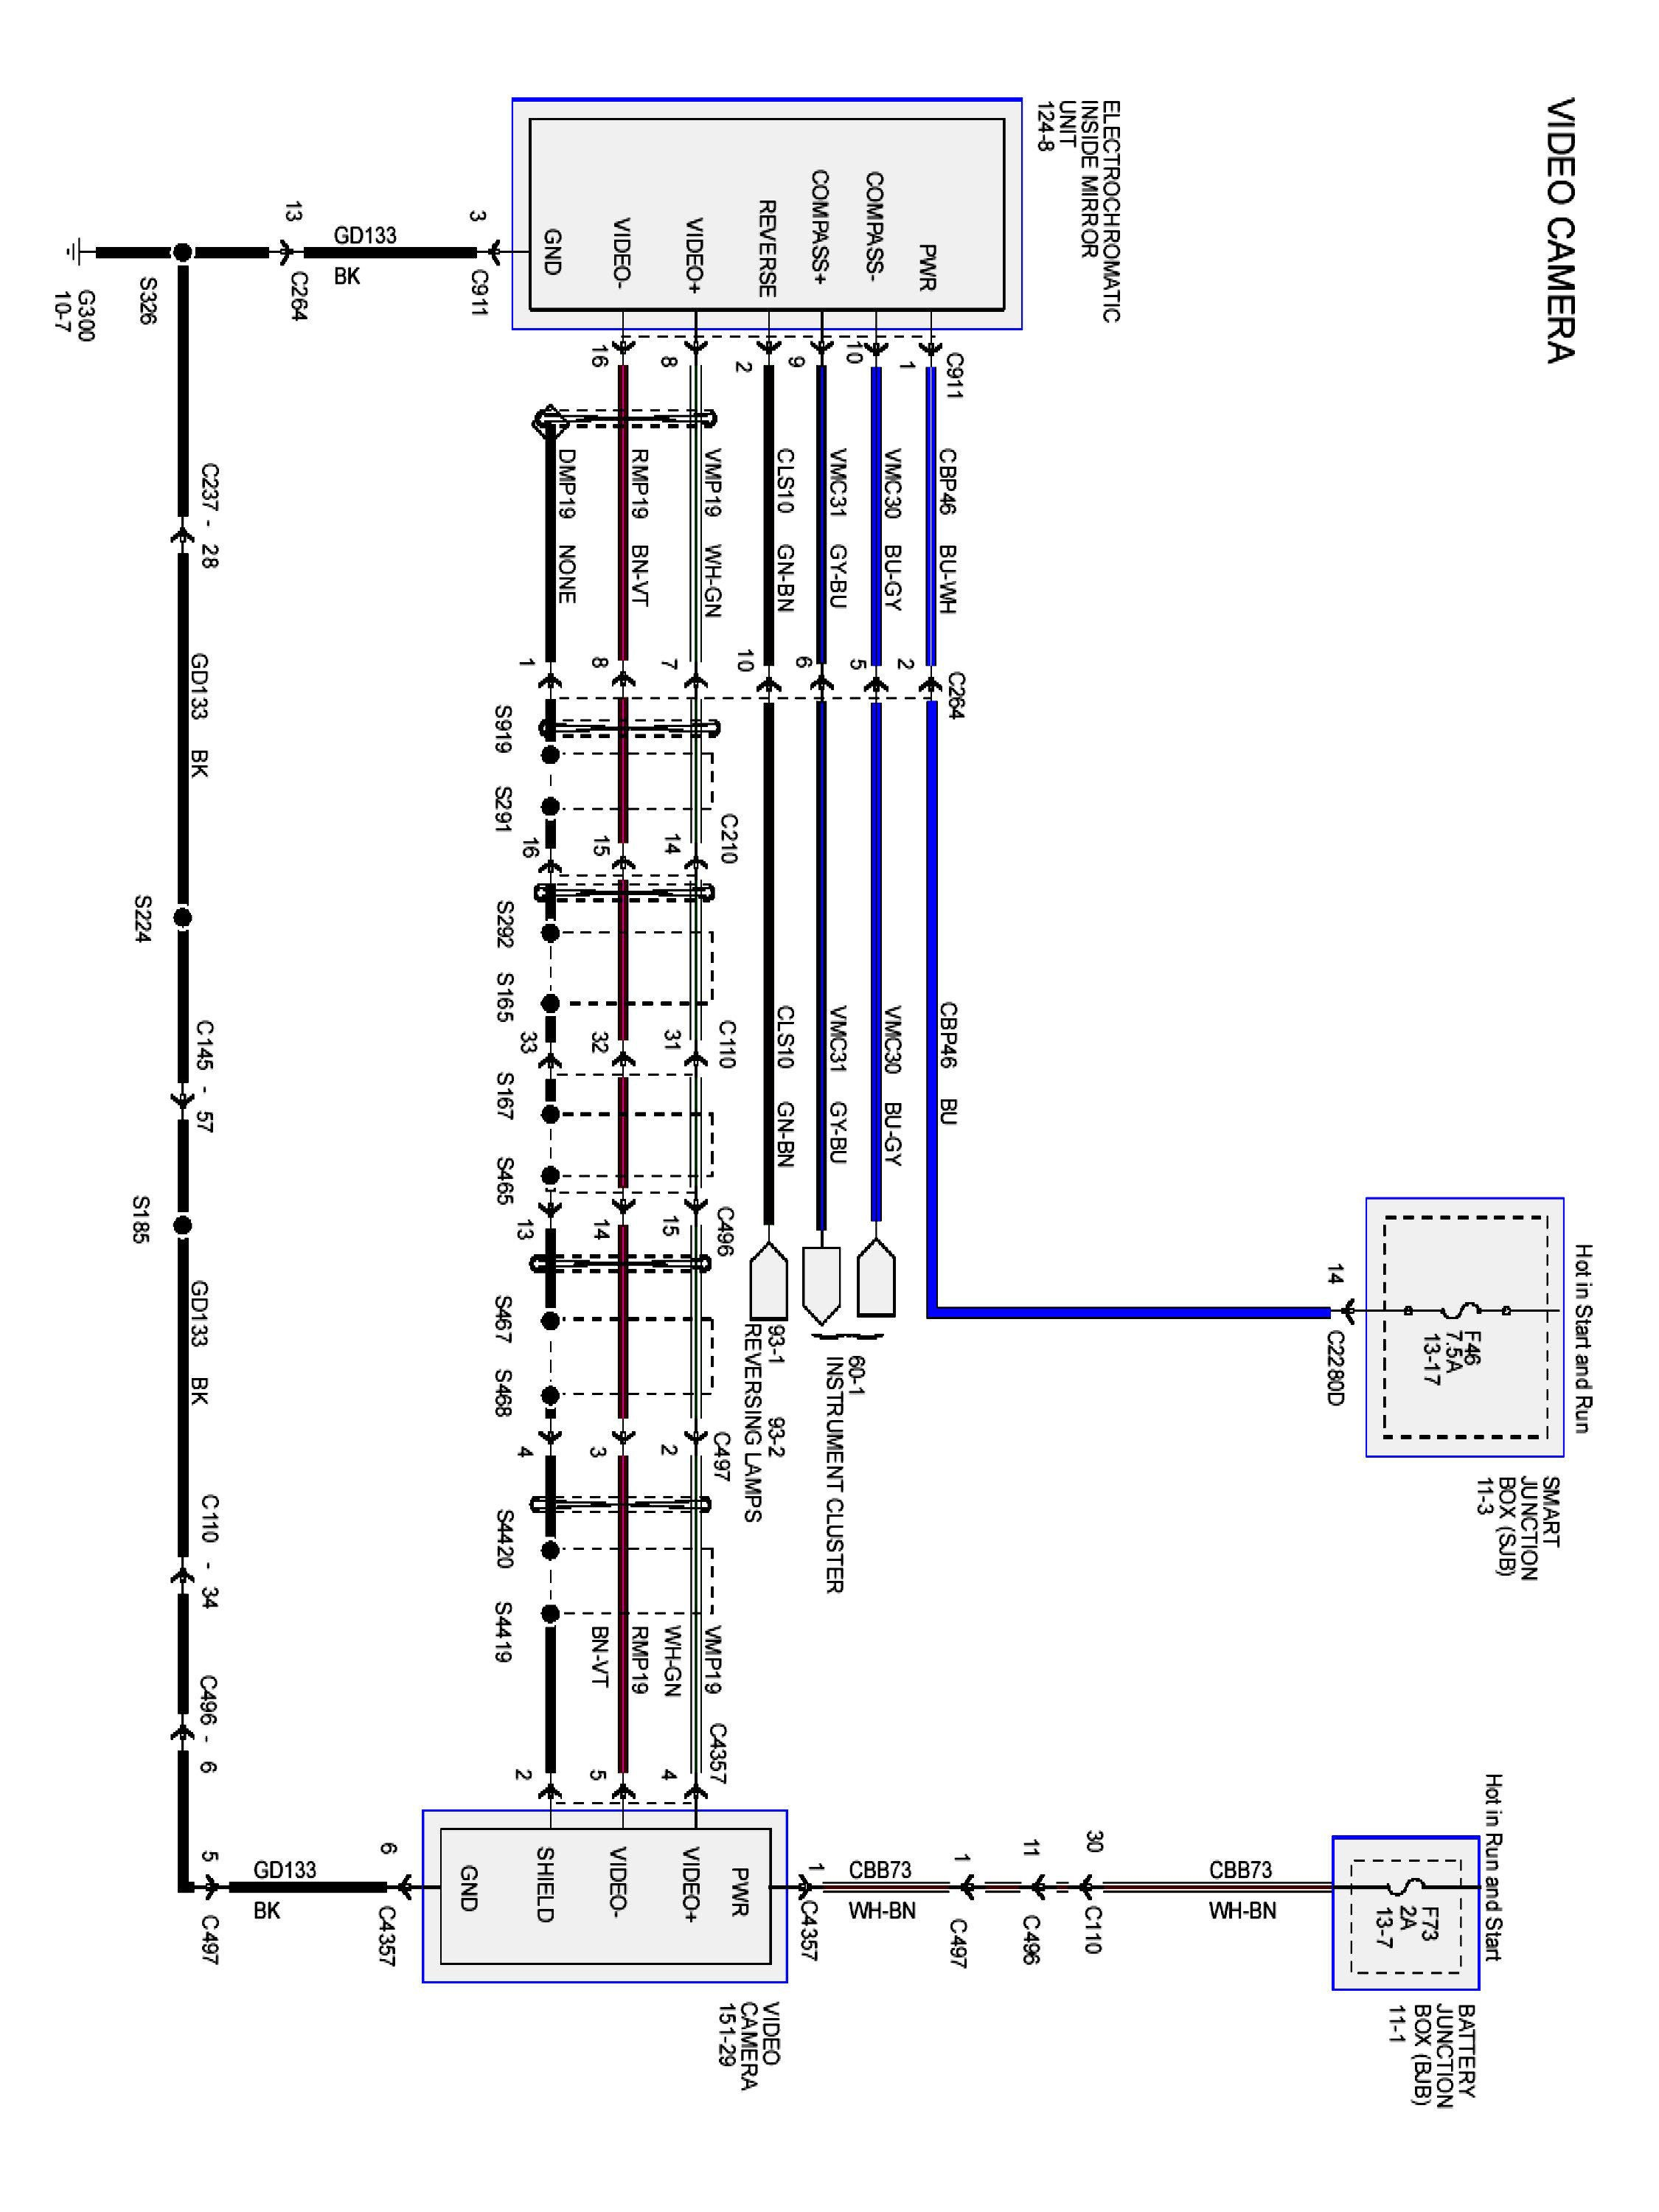 Wiring Diagram for Rear View Camera Save Backup Camera Diagram Fresh 6 Voyager Backup Camera Wiring